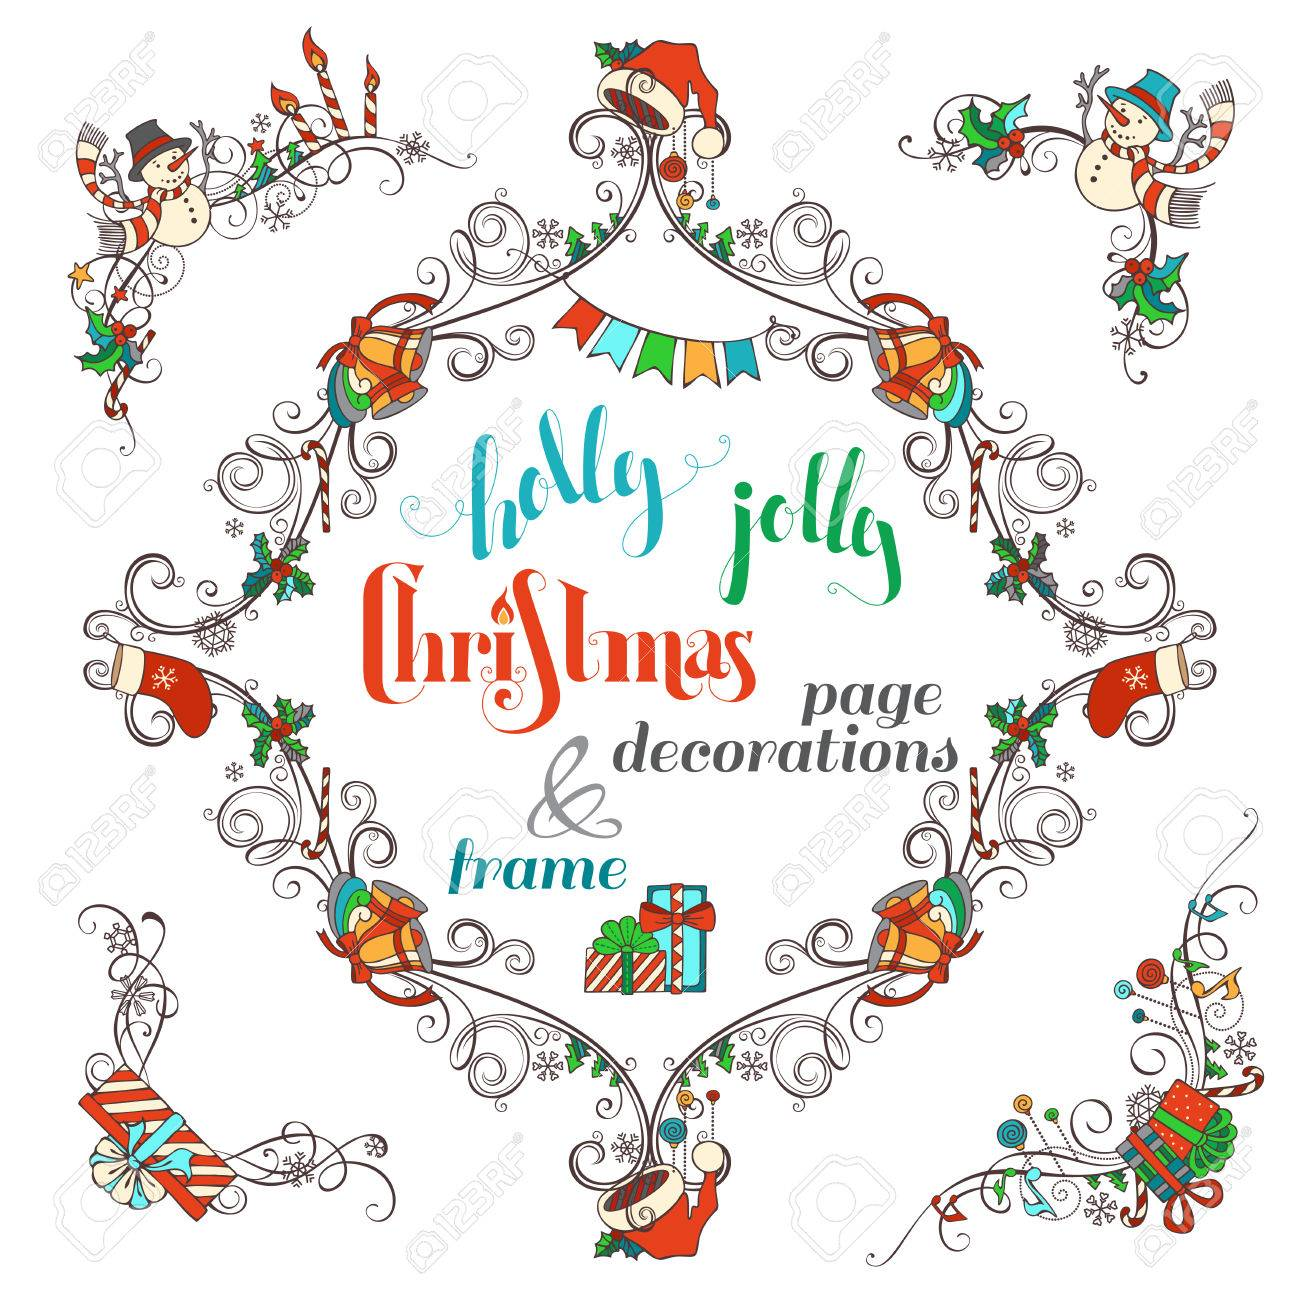 Christmas Ornate Frame And Page Corner Decorations Isolated On White Background Baubles Gifts